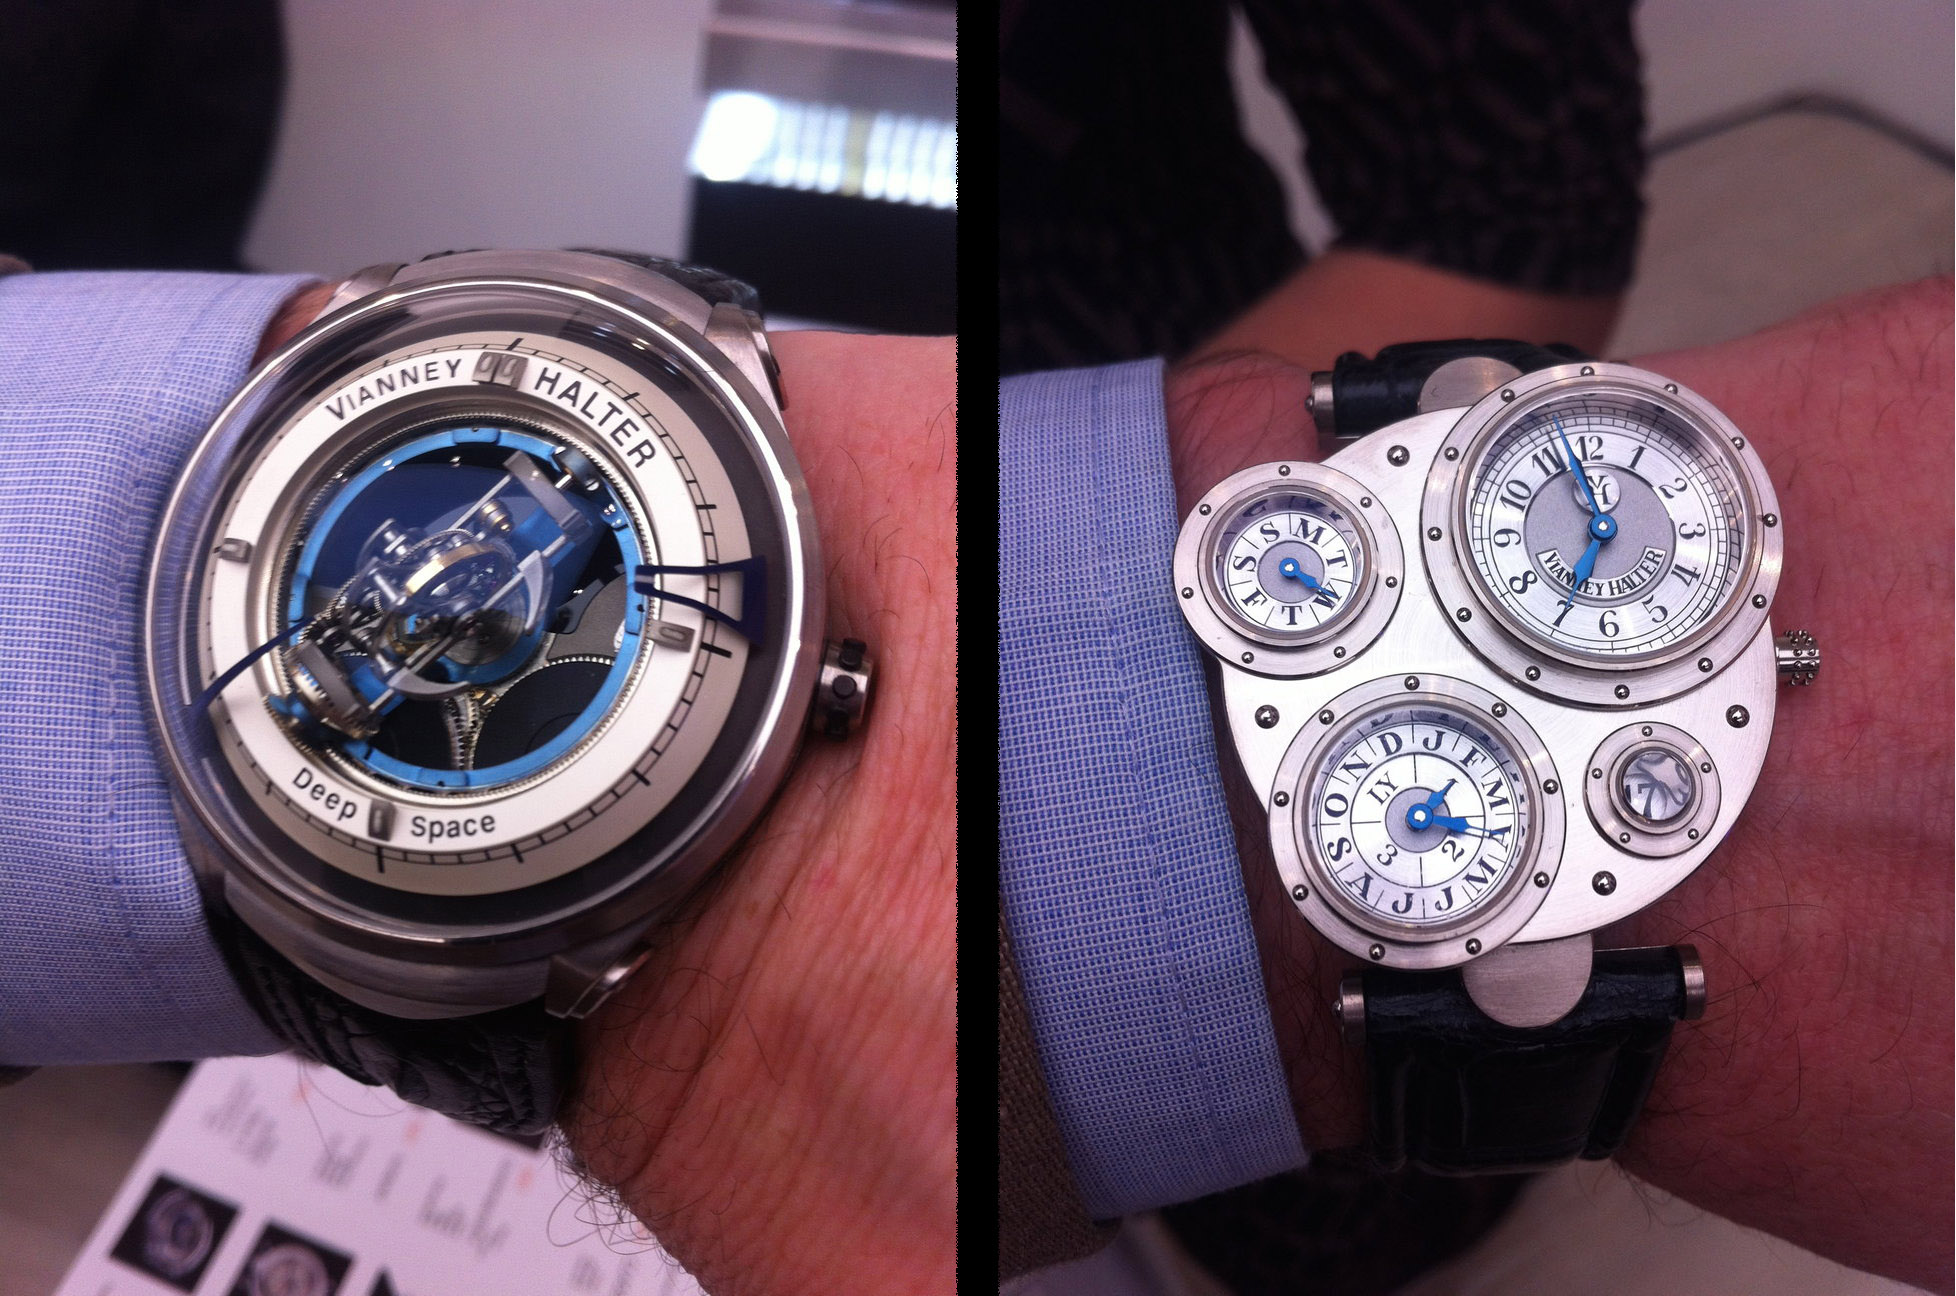 Vianney Halter Deep Space Tourbillon & Antiqua Perpetual Calendar